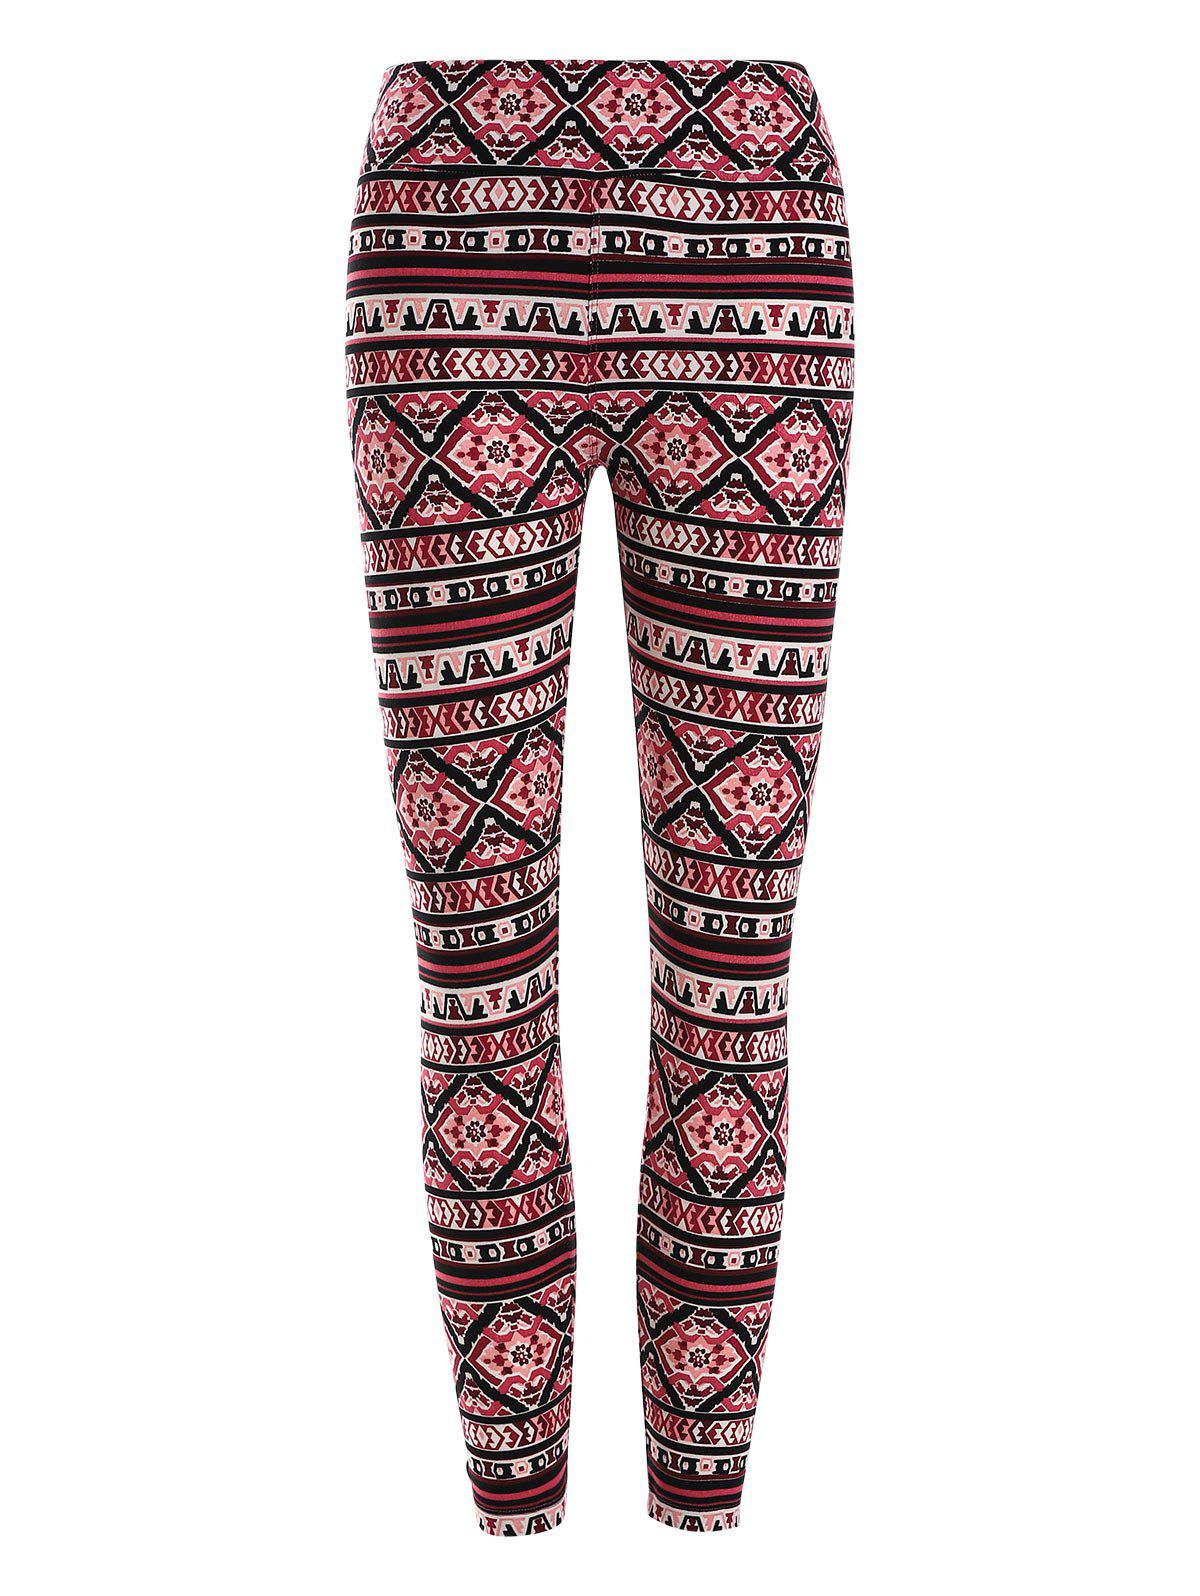 Chic High Waisted Geometric Patterned Leggings